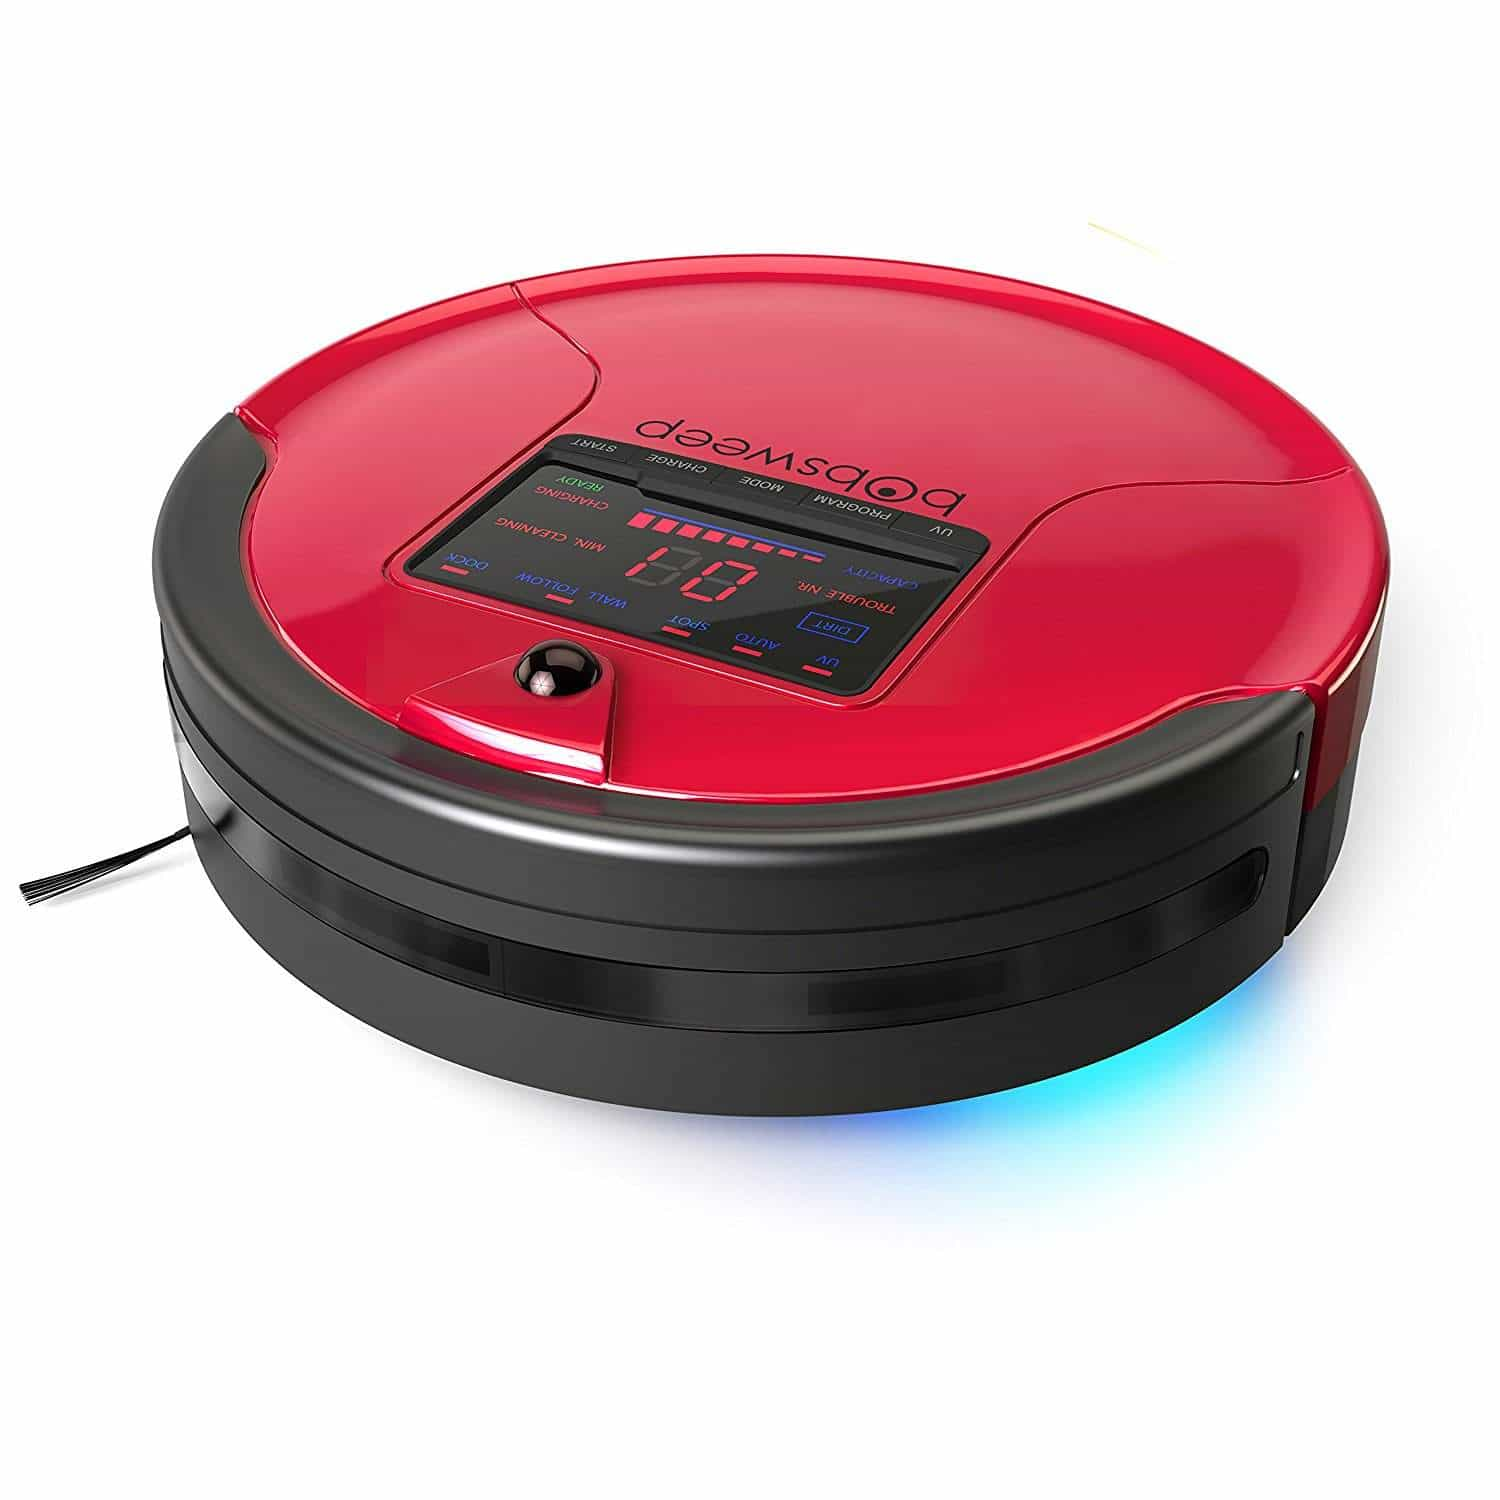 Best Robot Mop UPDATED Complete Robot Mop Buying Guide - What is the best robot floor cleaner